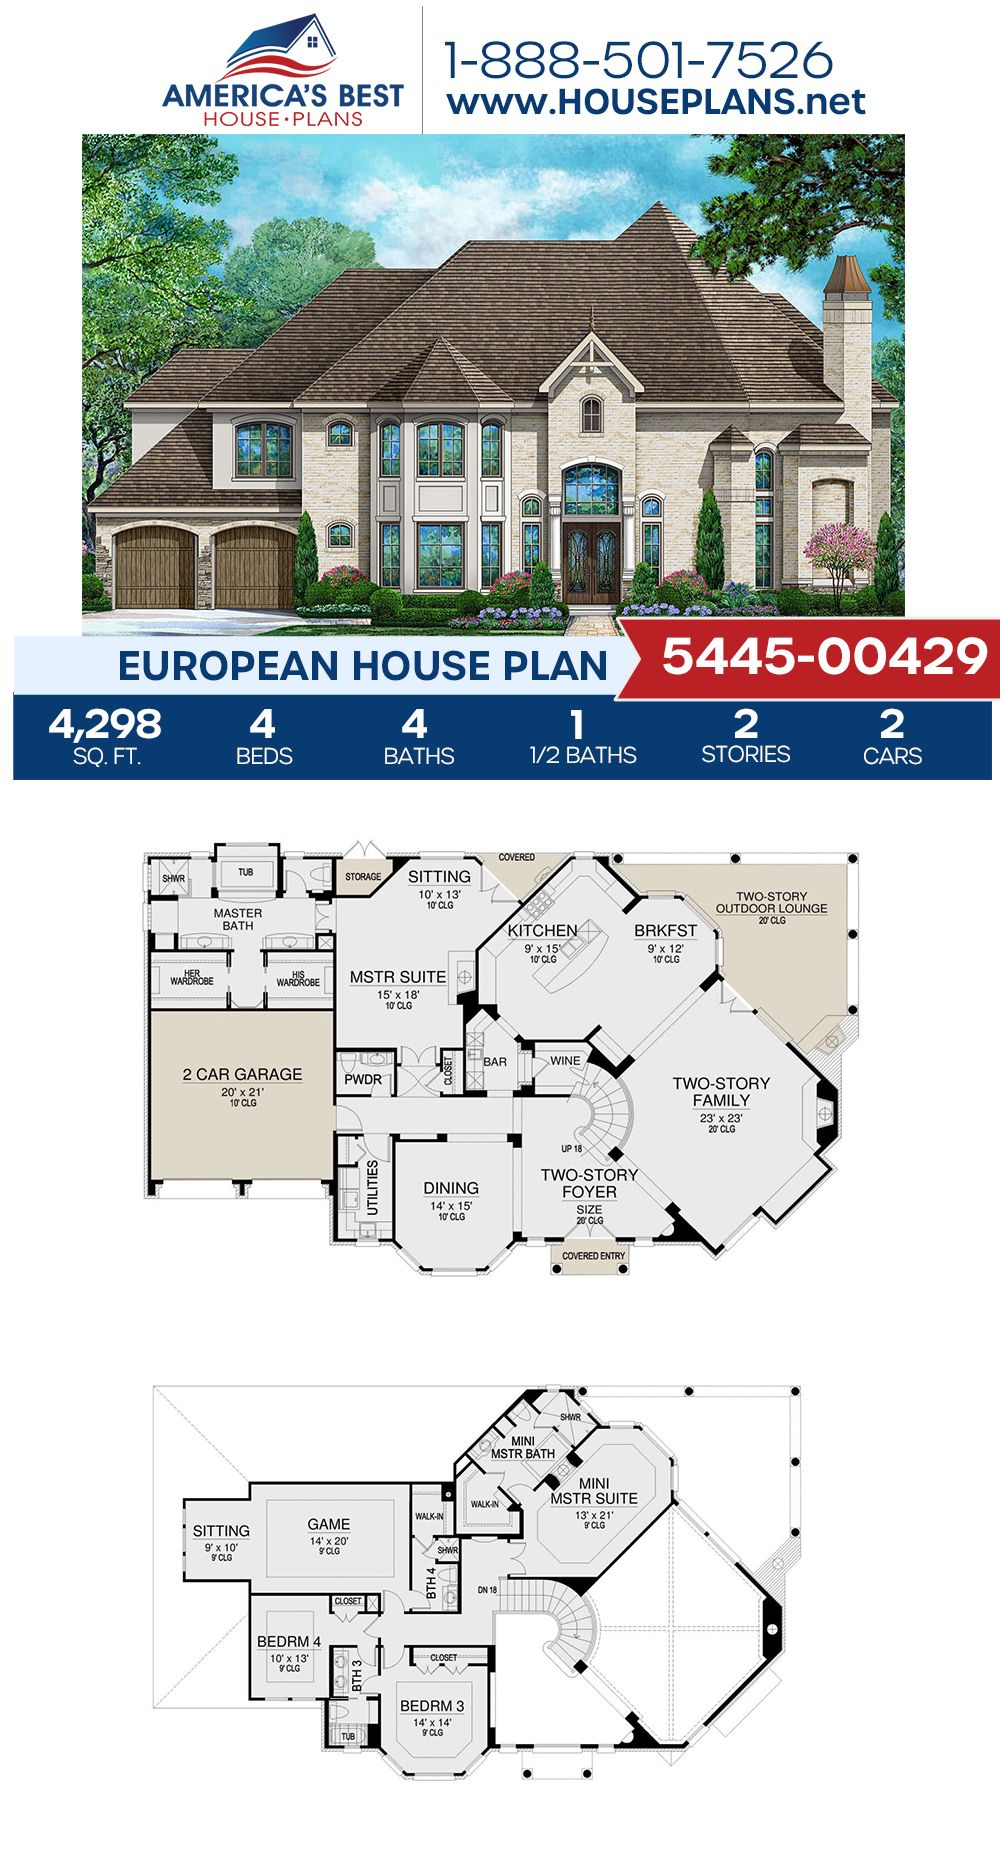 House Plan 5445 00429 French Country Plan 4 298 Square Feet 4 Bedrooms 4 5 Bathrooms Mansion Floor Plan House Plans European House Plan